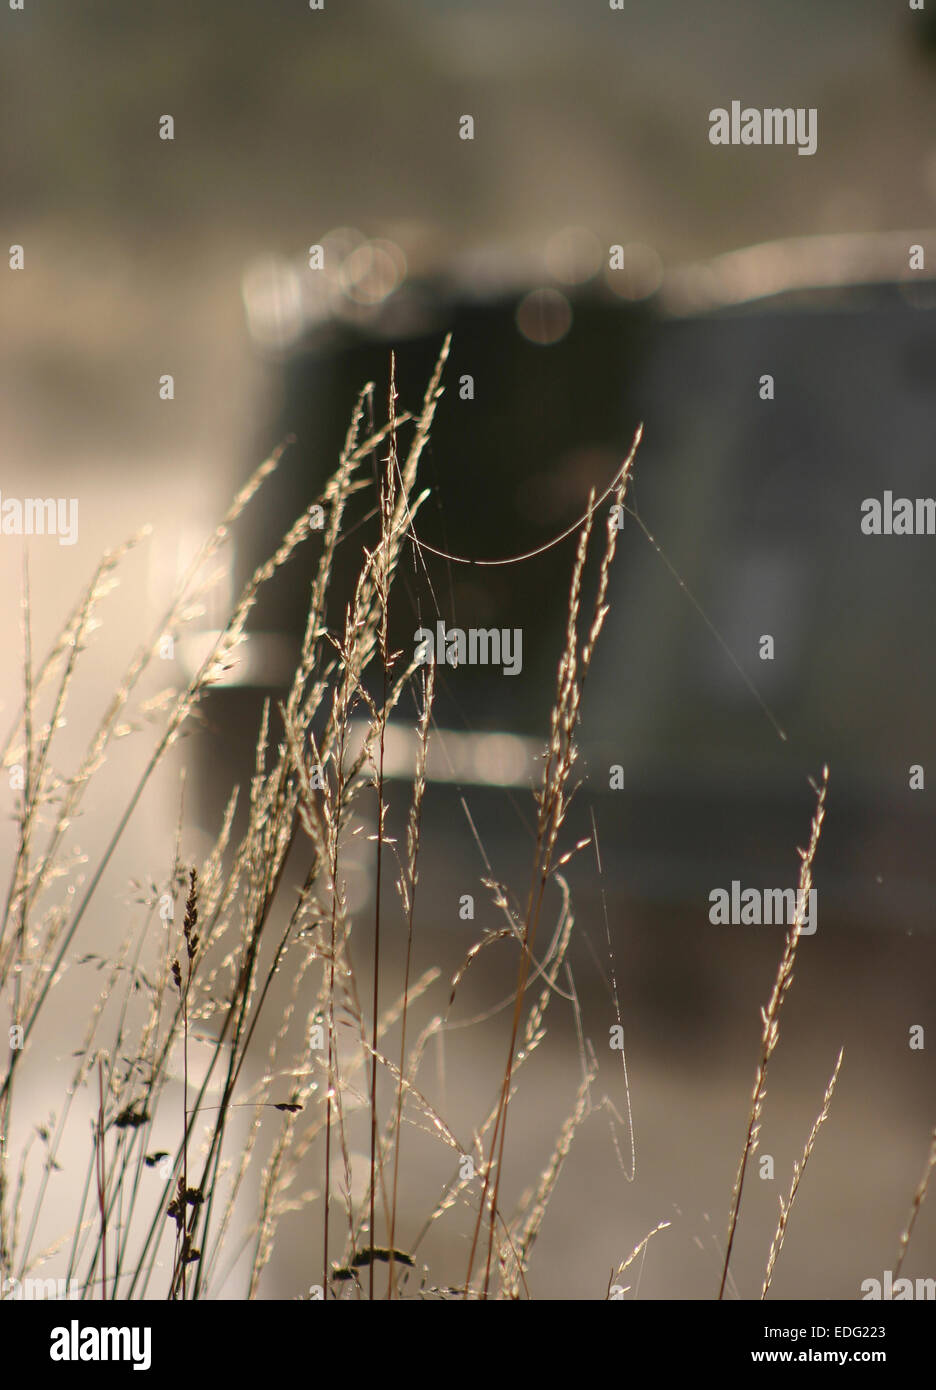 The early morning light catches the dew on the cobwebs strung between grasses along side the Caldon Canal in Staffordshire. - Stock Image